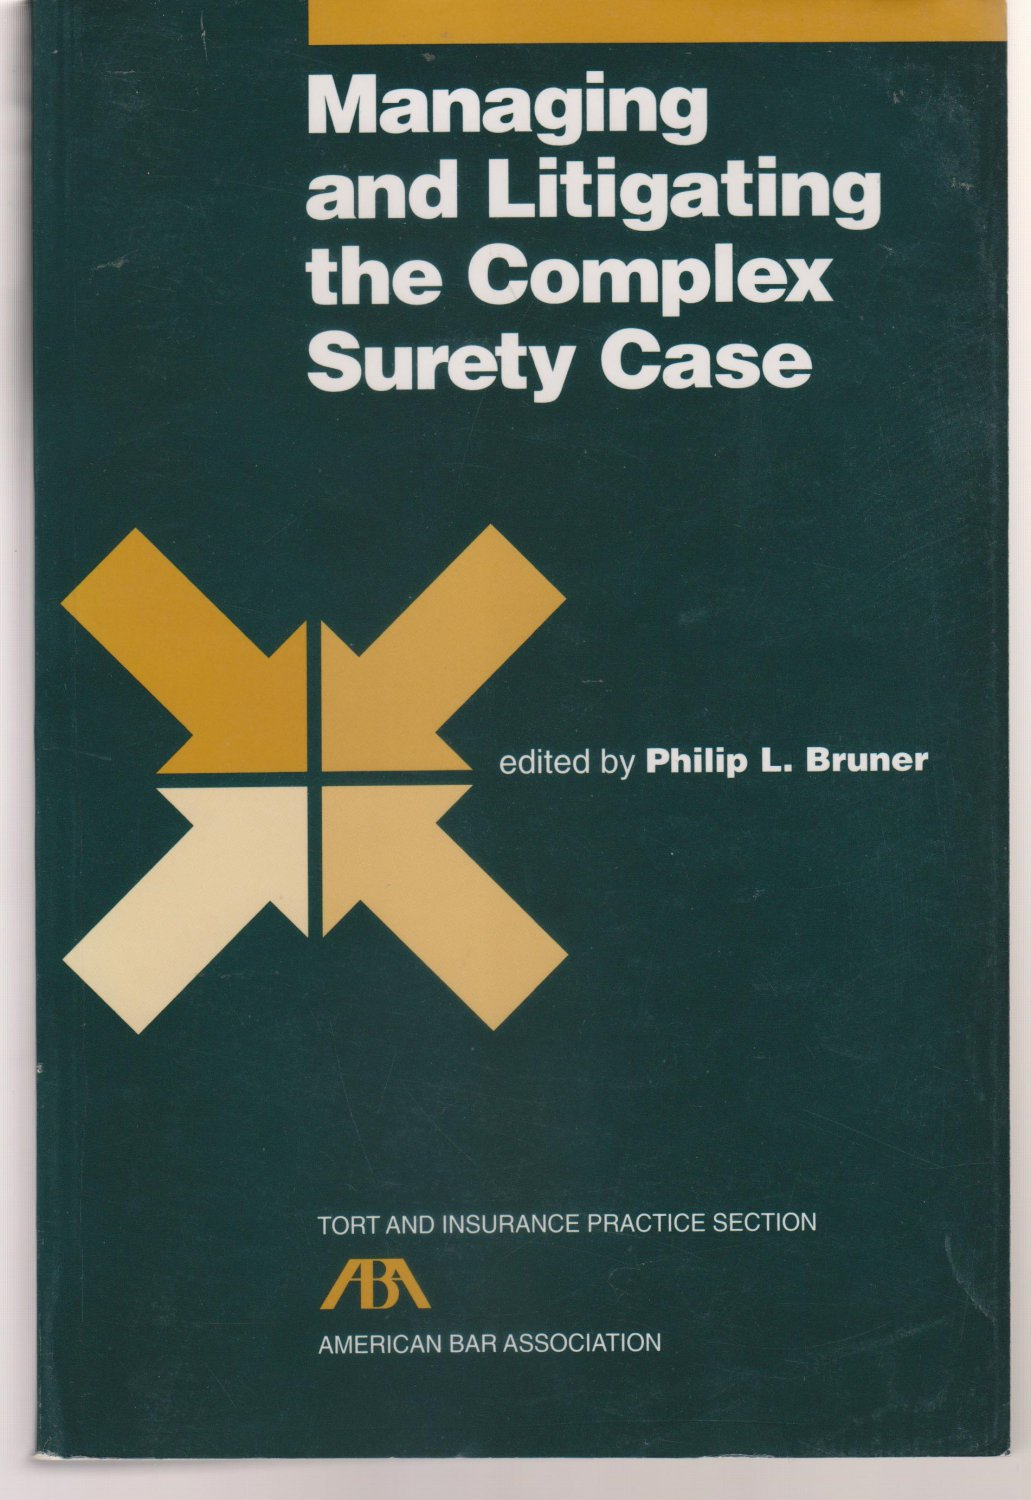 Managing and Litigating the Complex Surety Case  by Philip L. Bruner